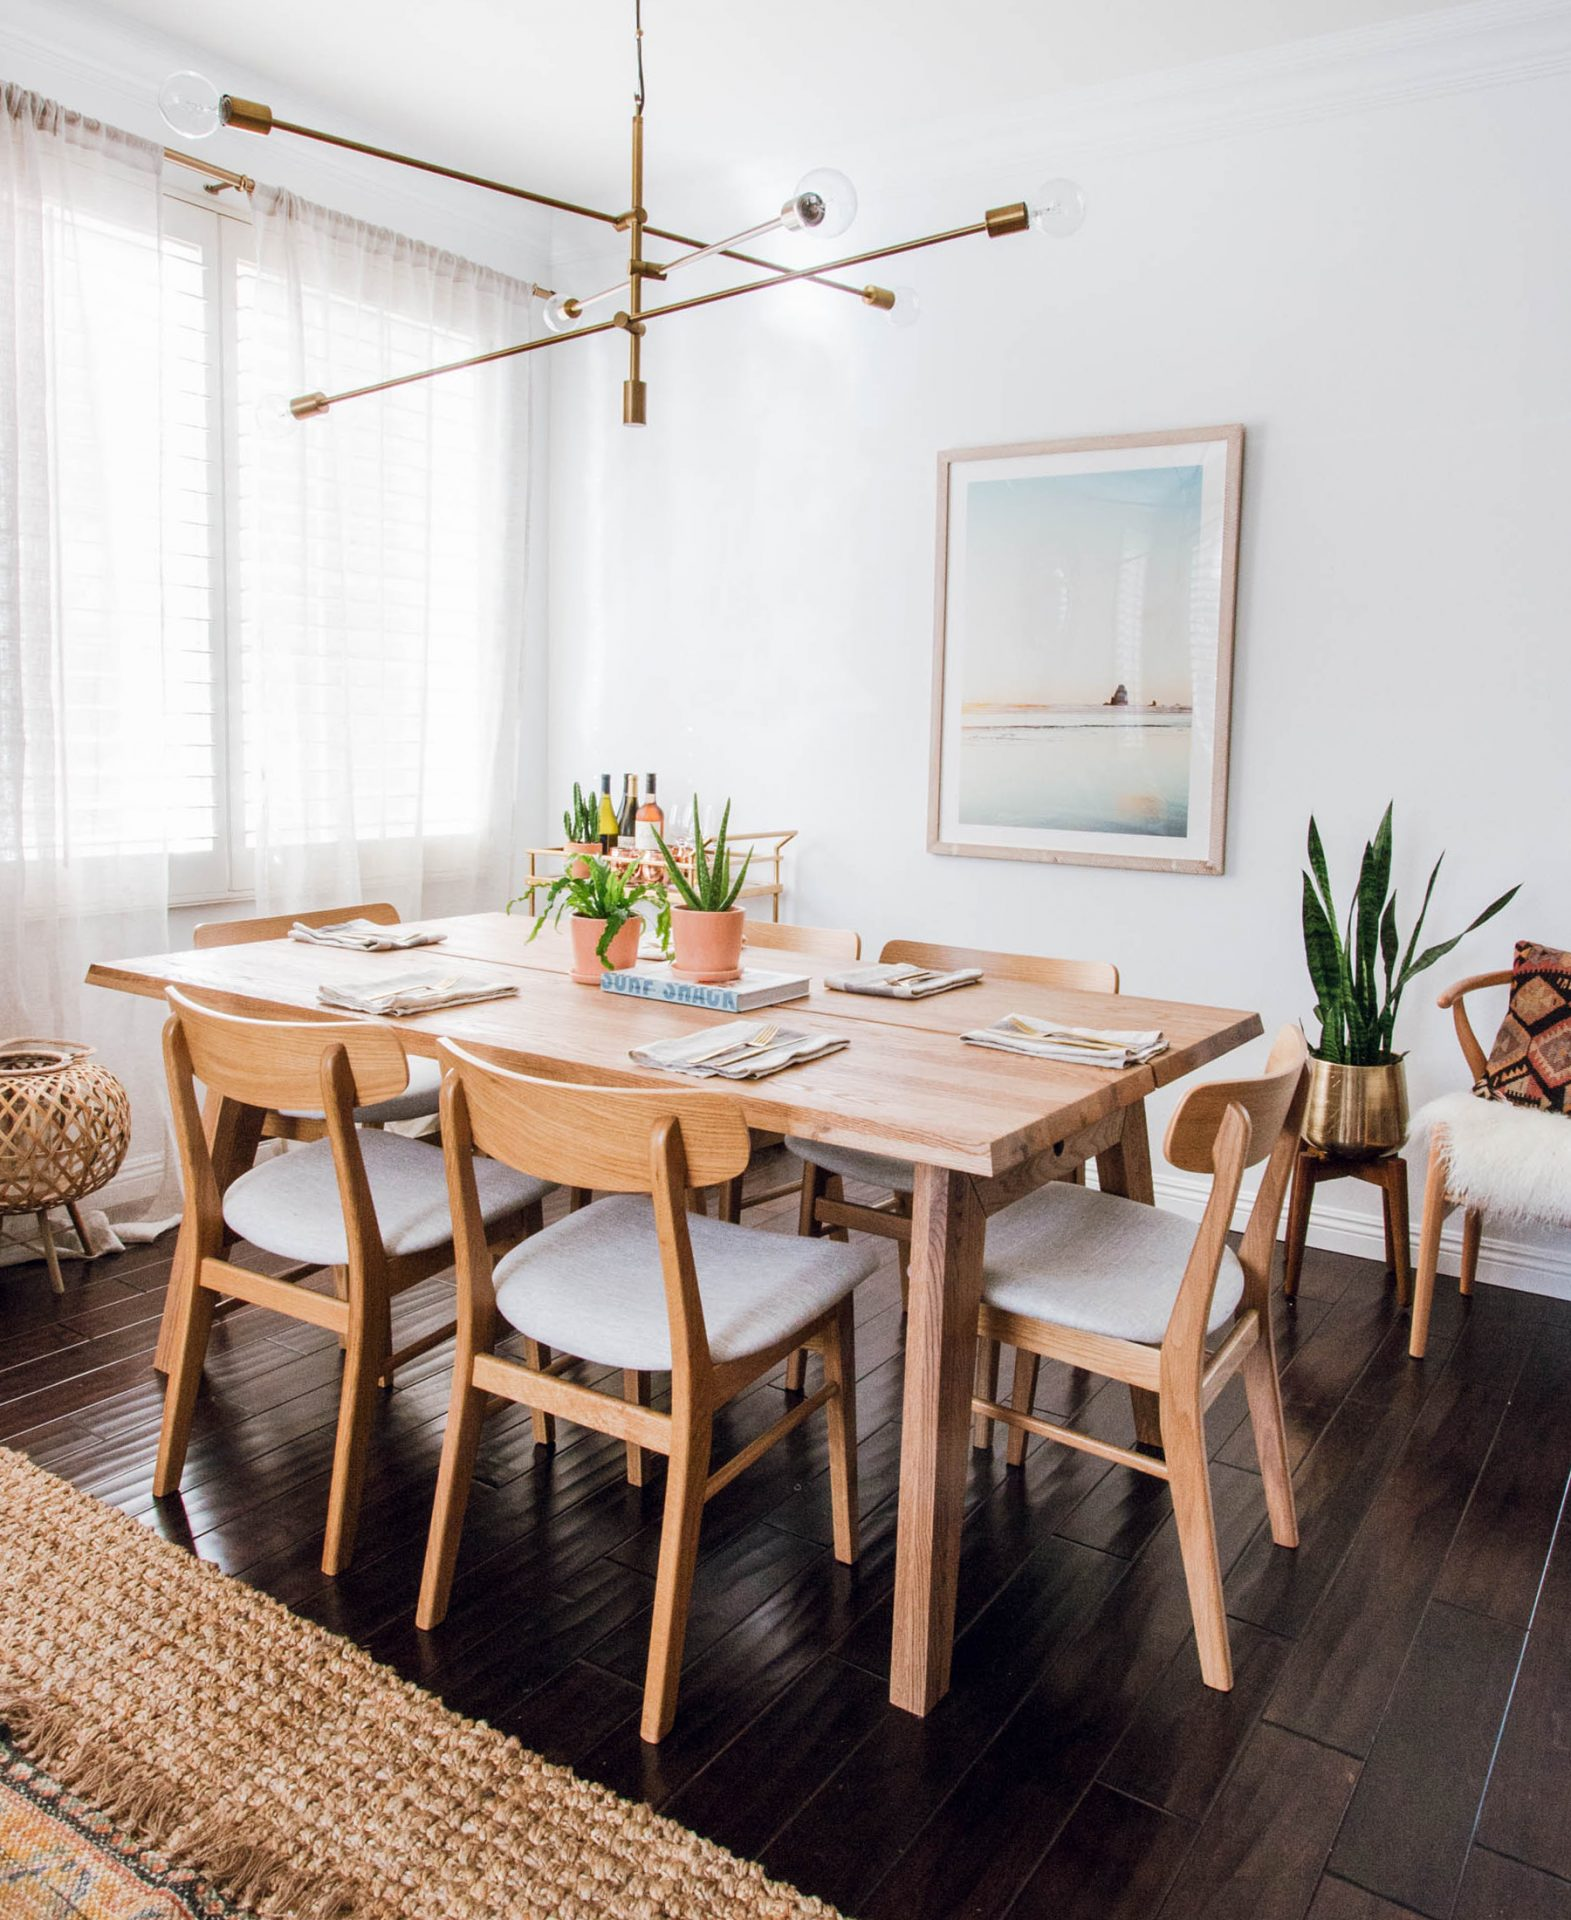 Blogger Anita Yokota's dining room features mid-century modern furniture, plants, and natural materials.